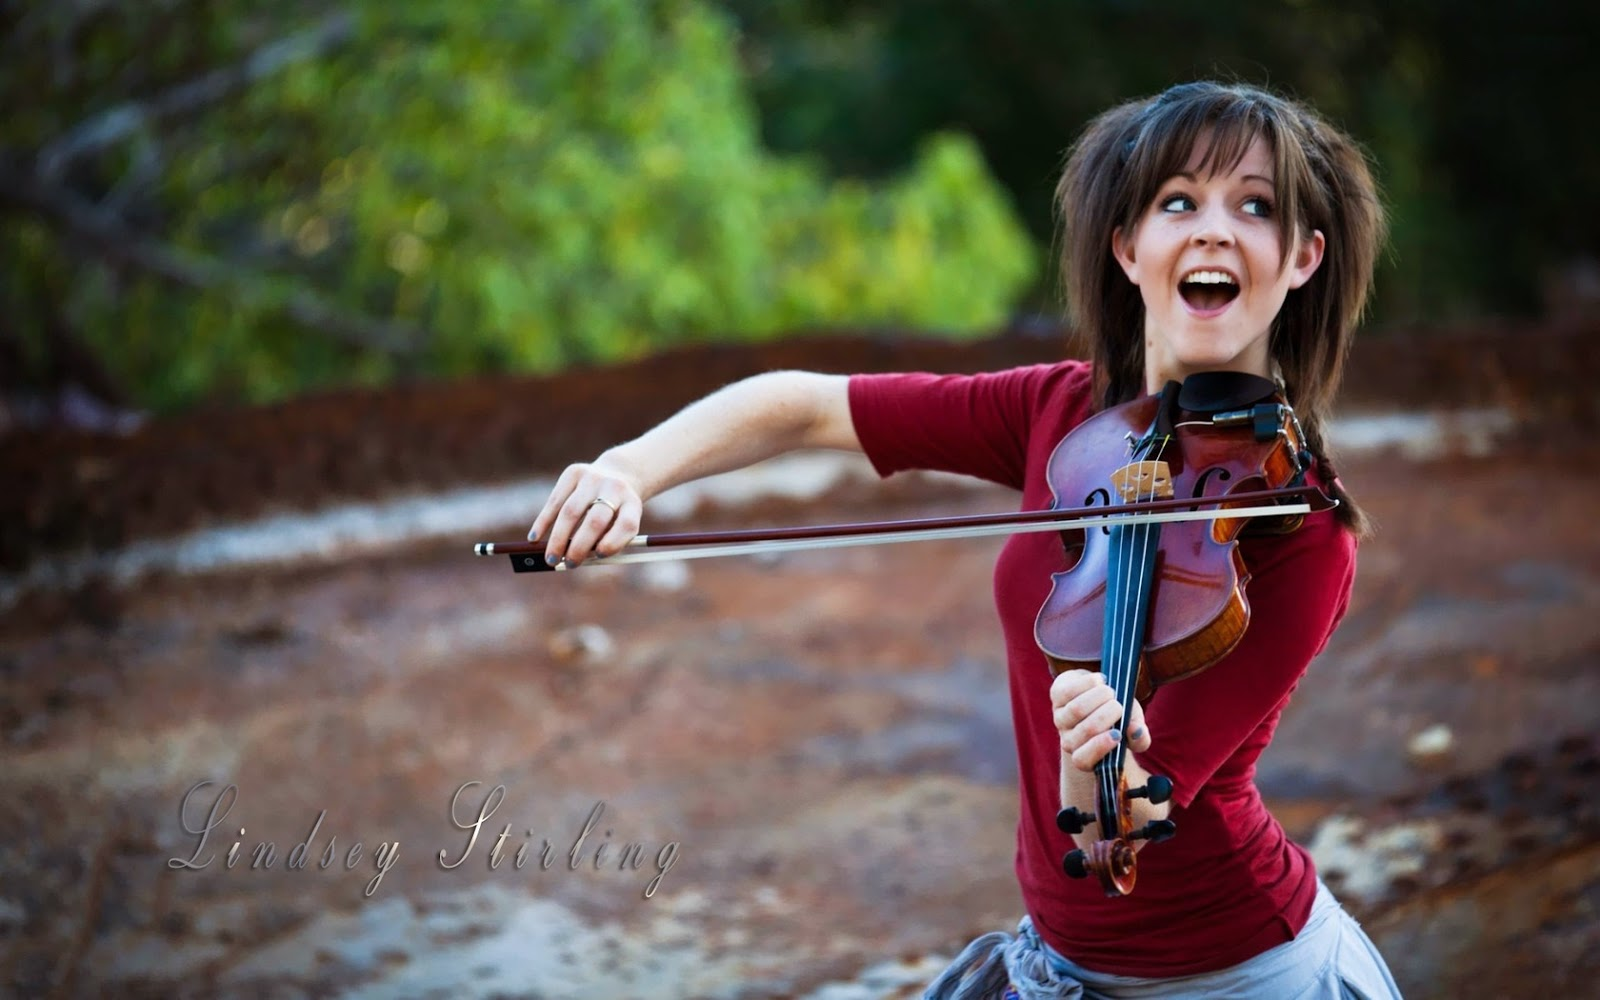 Lindsey stirling hd wallpapers for free download muhammad uzair.